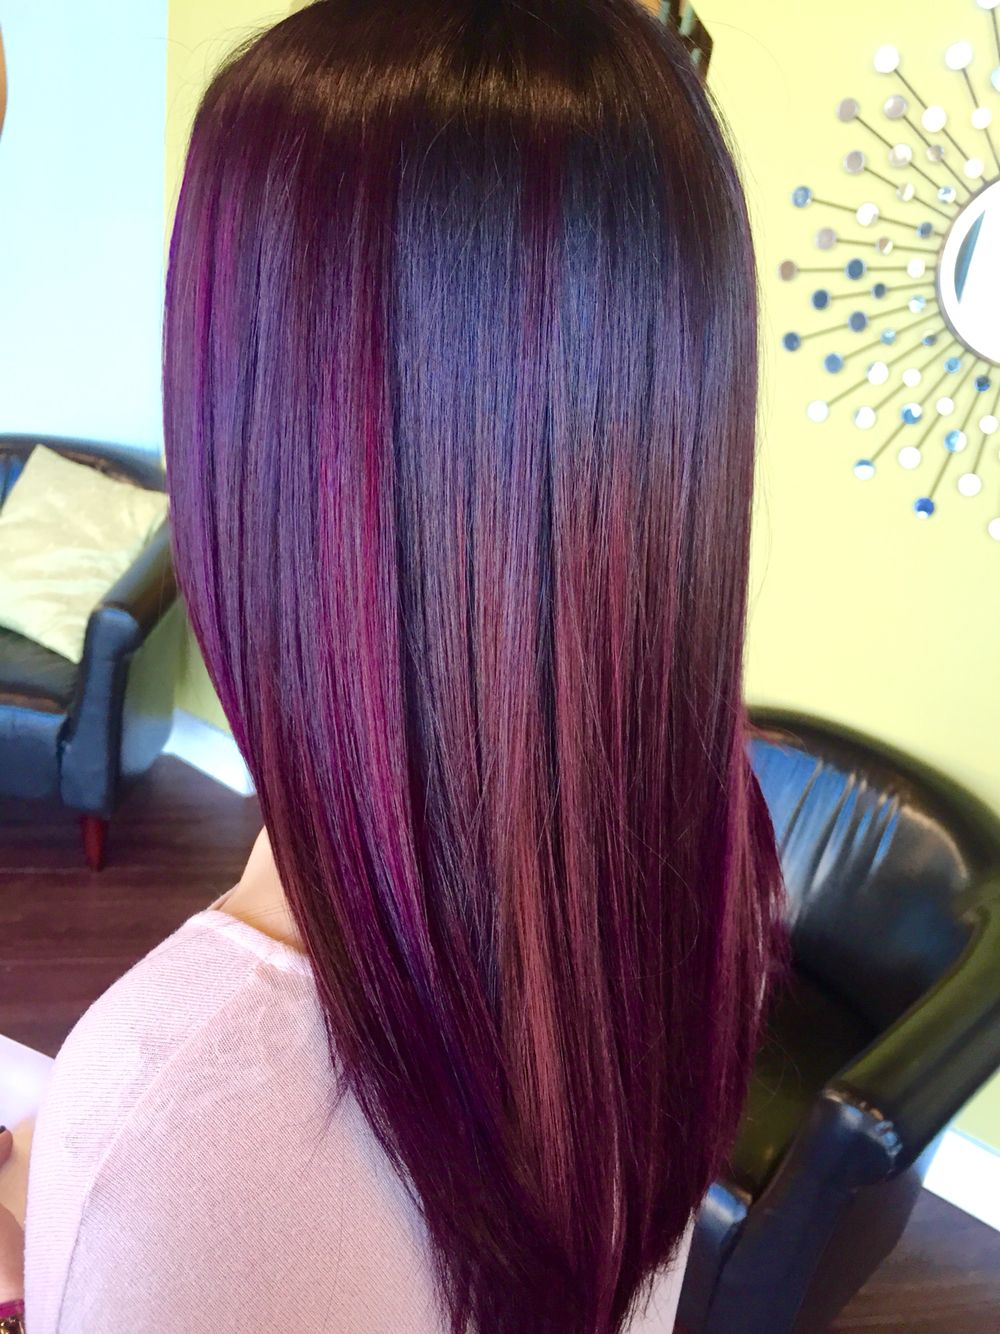 Joico Amethyst Purple Semi Color On Virgin Brown Hair With